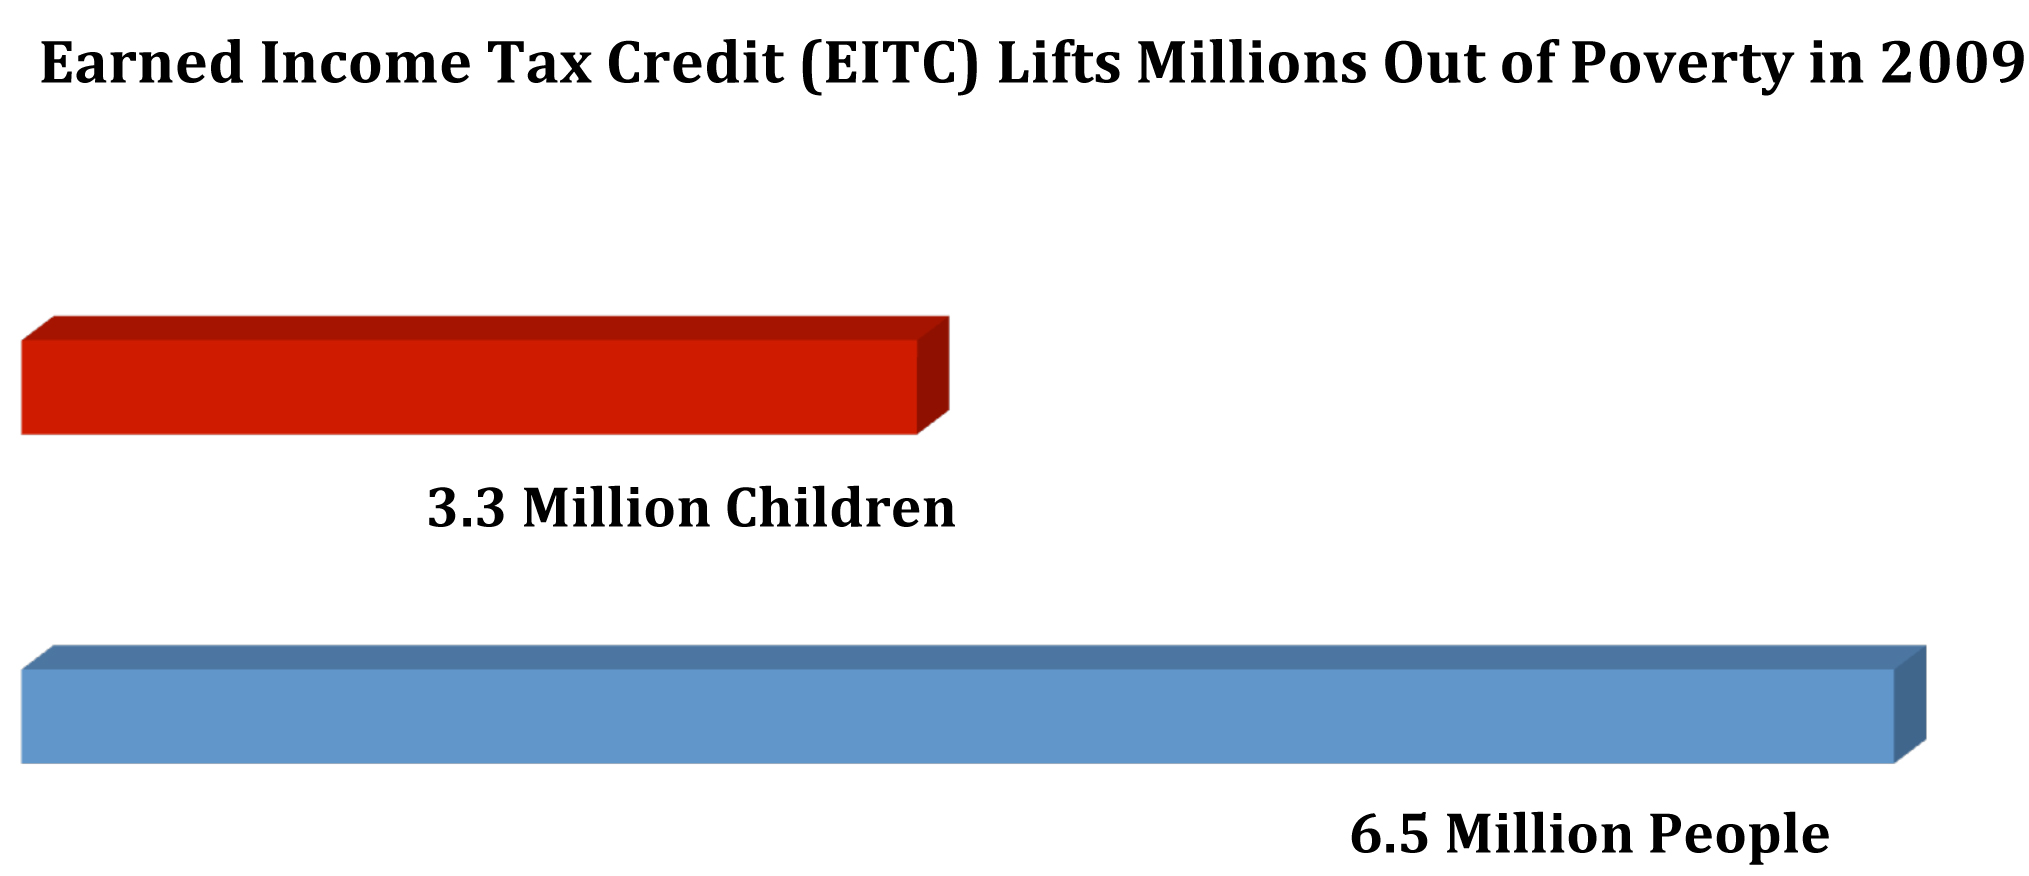 Microsoft Word - EITC Graphic.docx